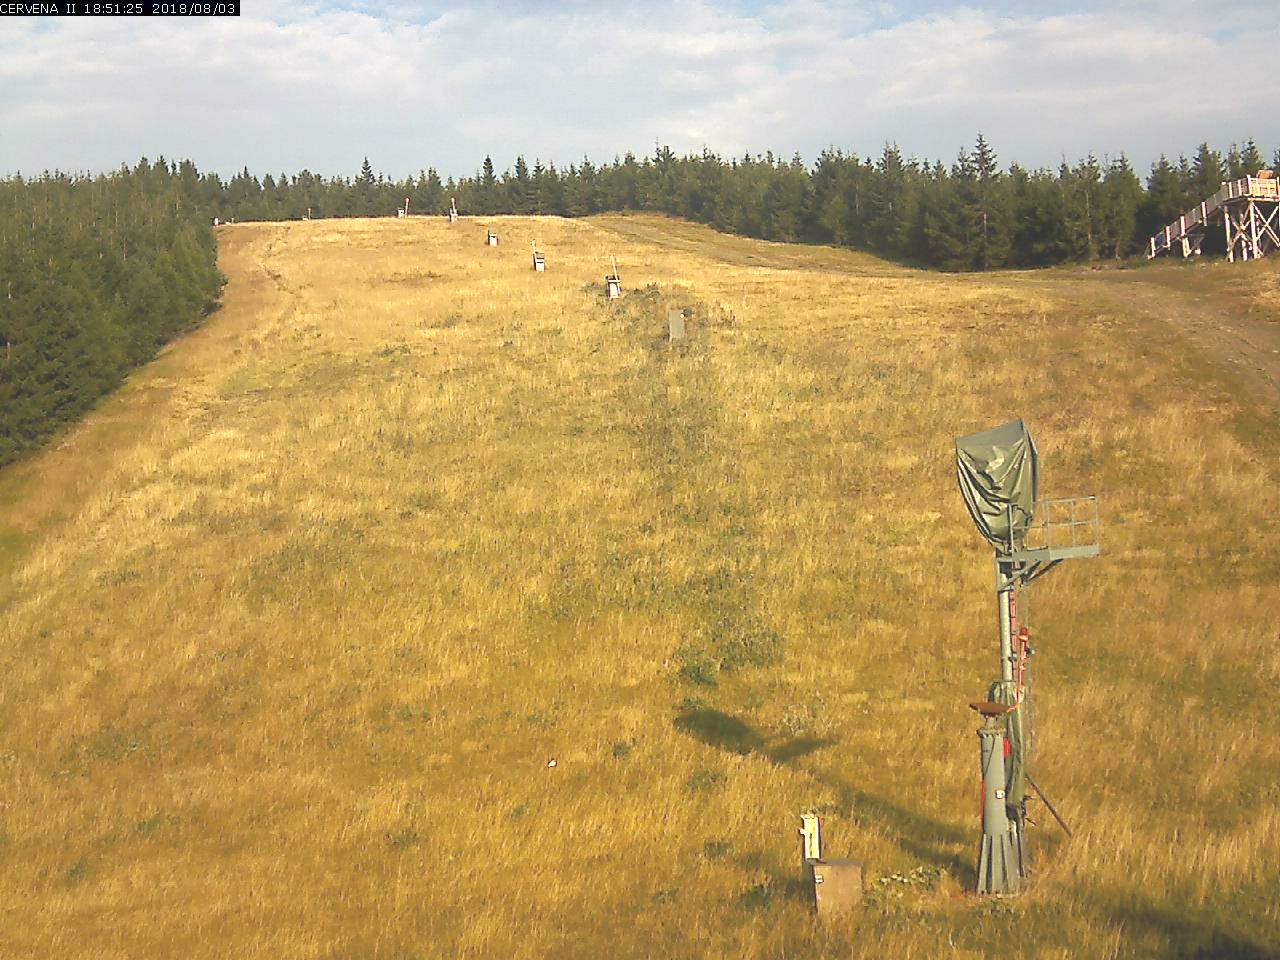 Webcam Skigebied Harrachov cam 5 - Reuzengebergte